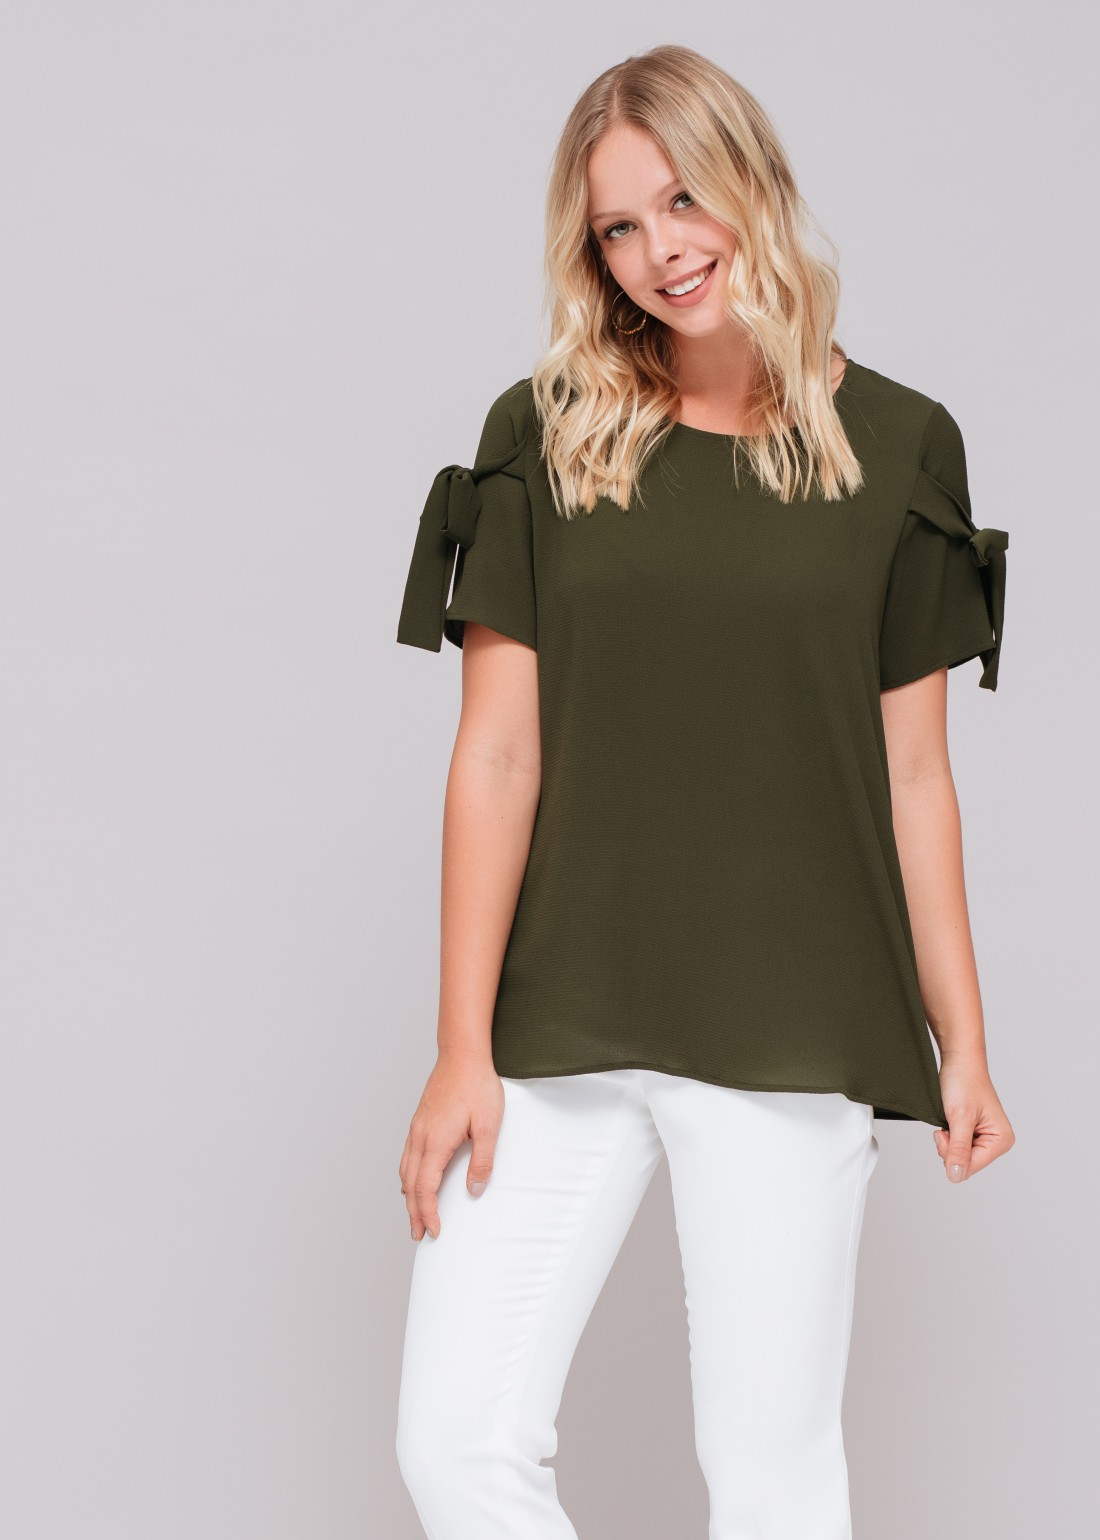 Short Sleeve Tee with Bows Solid